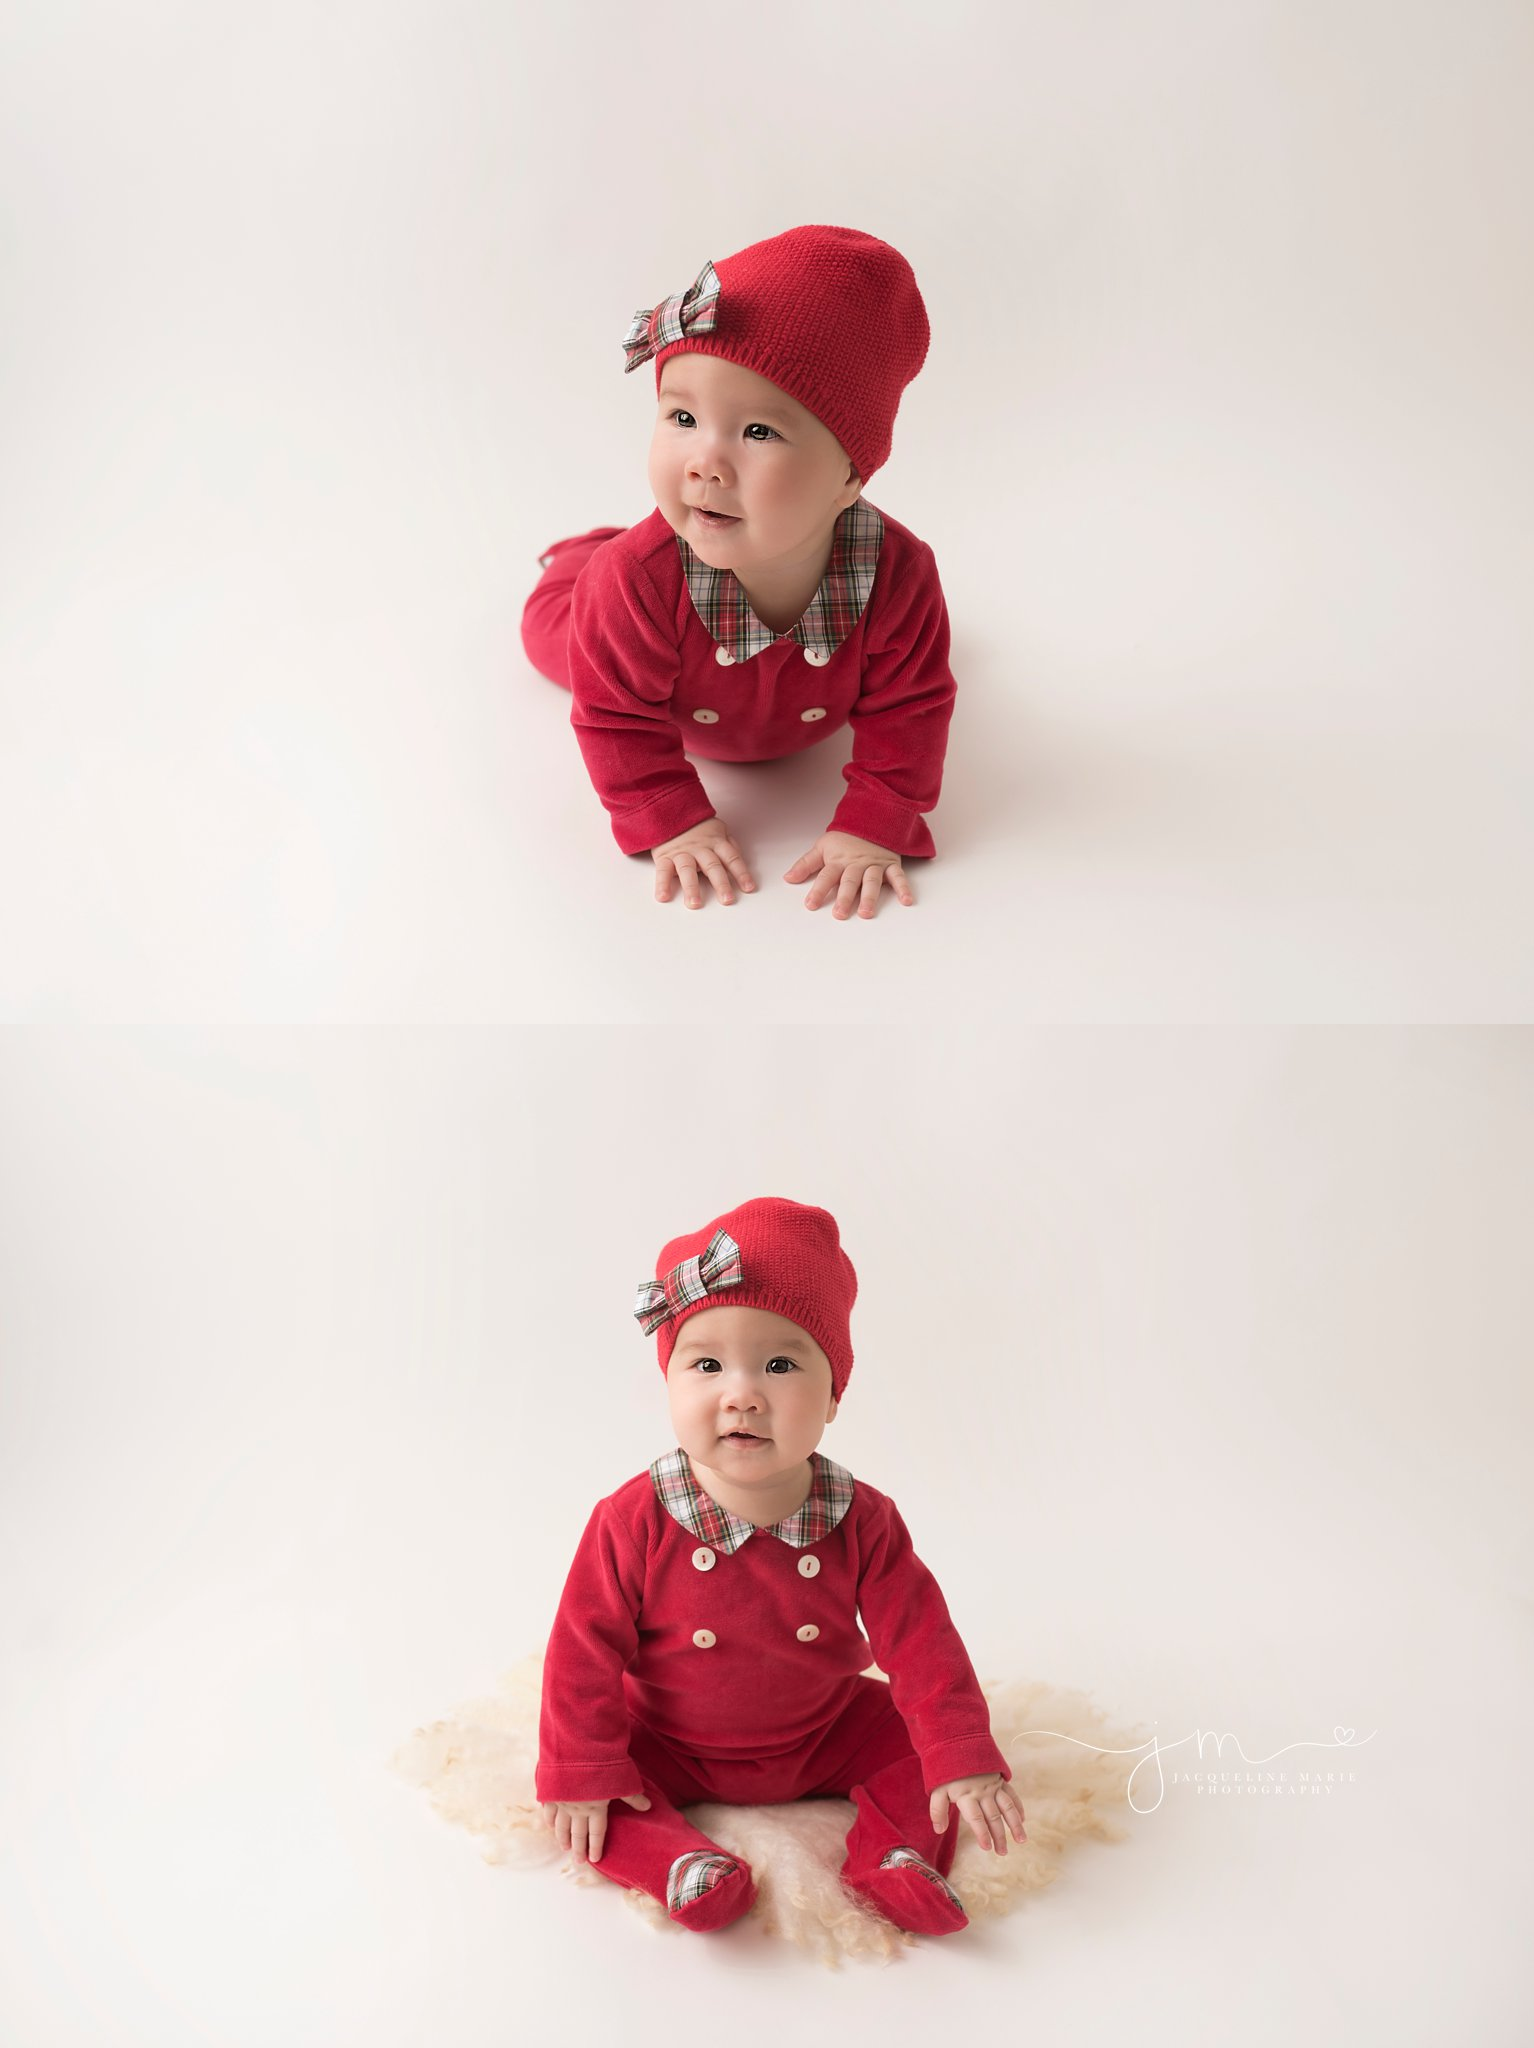 columbus ohio baby girl wears red romper and matching hat for baby photography by jacqueline marie photography